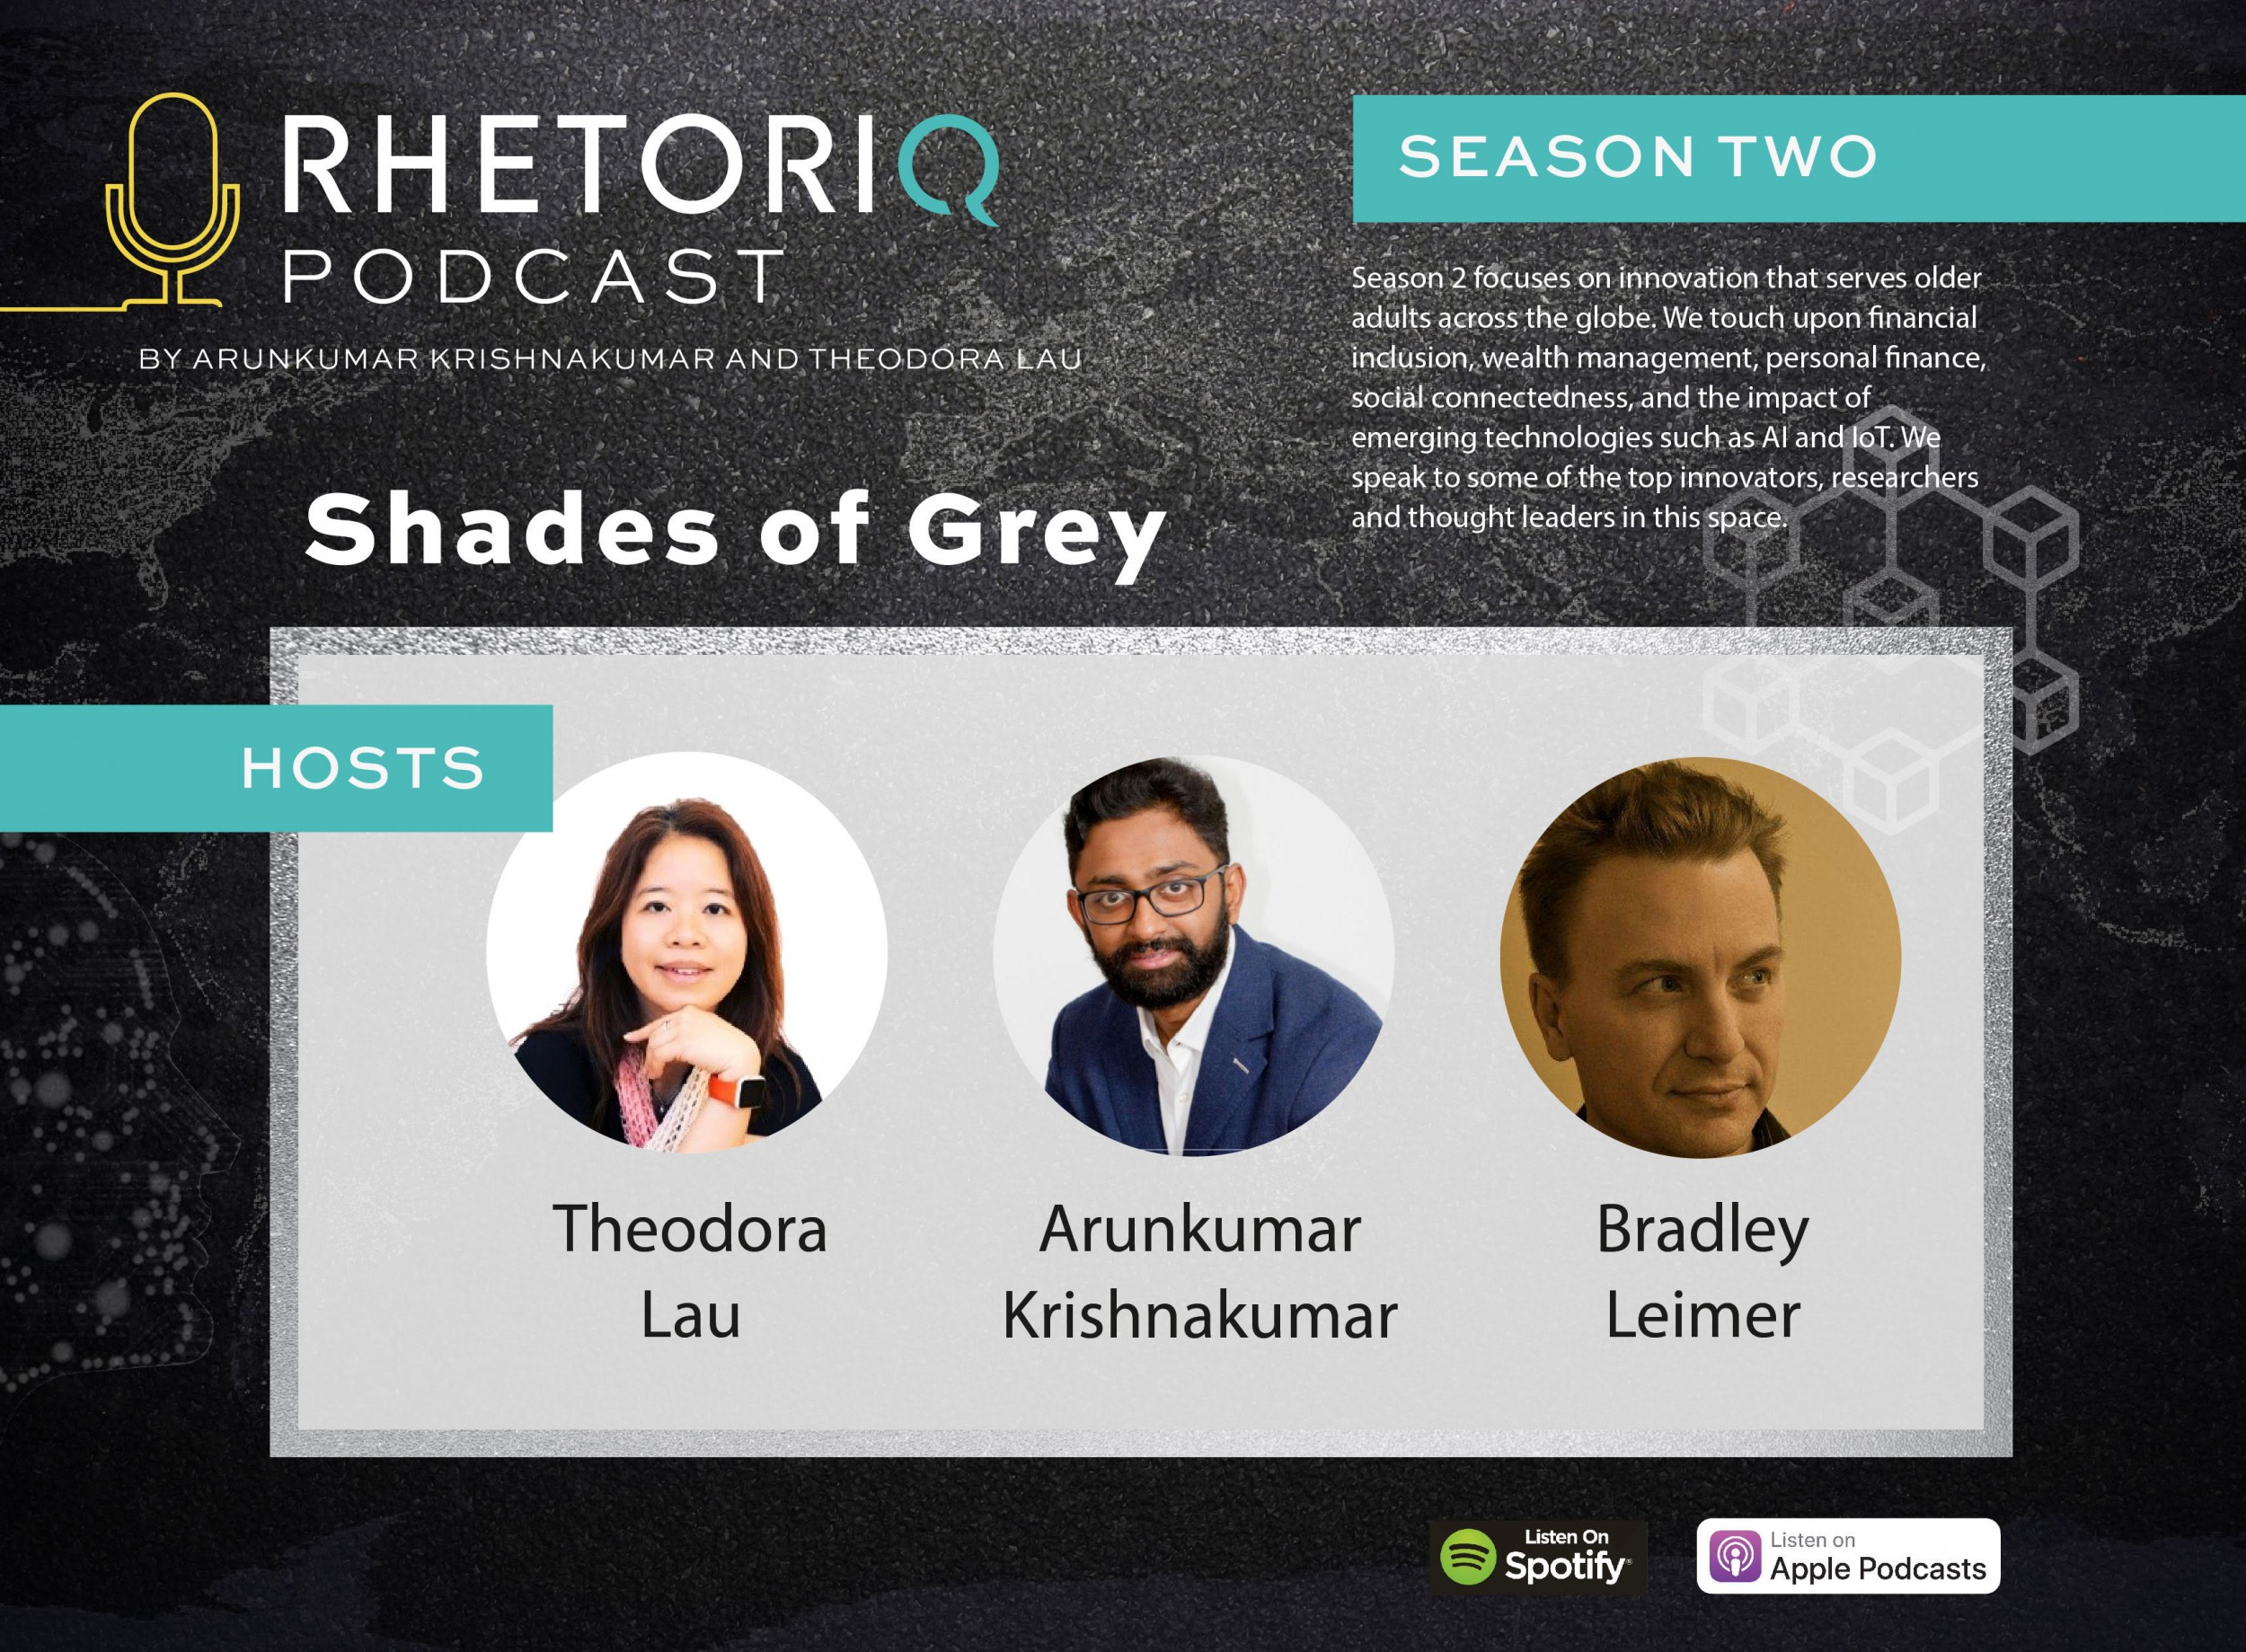 Shades of Grey – A Podcast on technology innovation and longevity